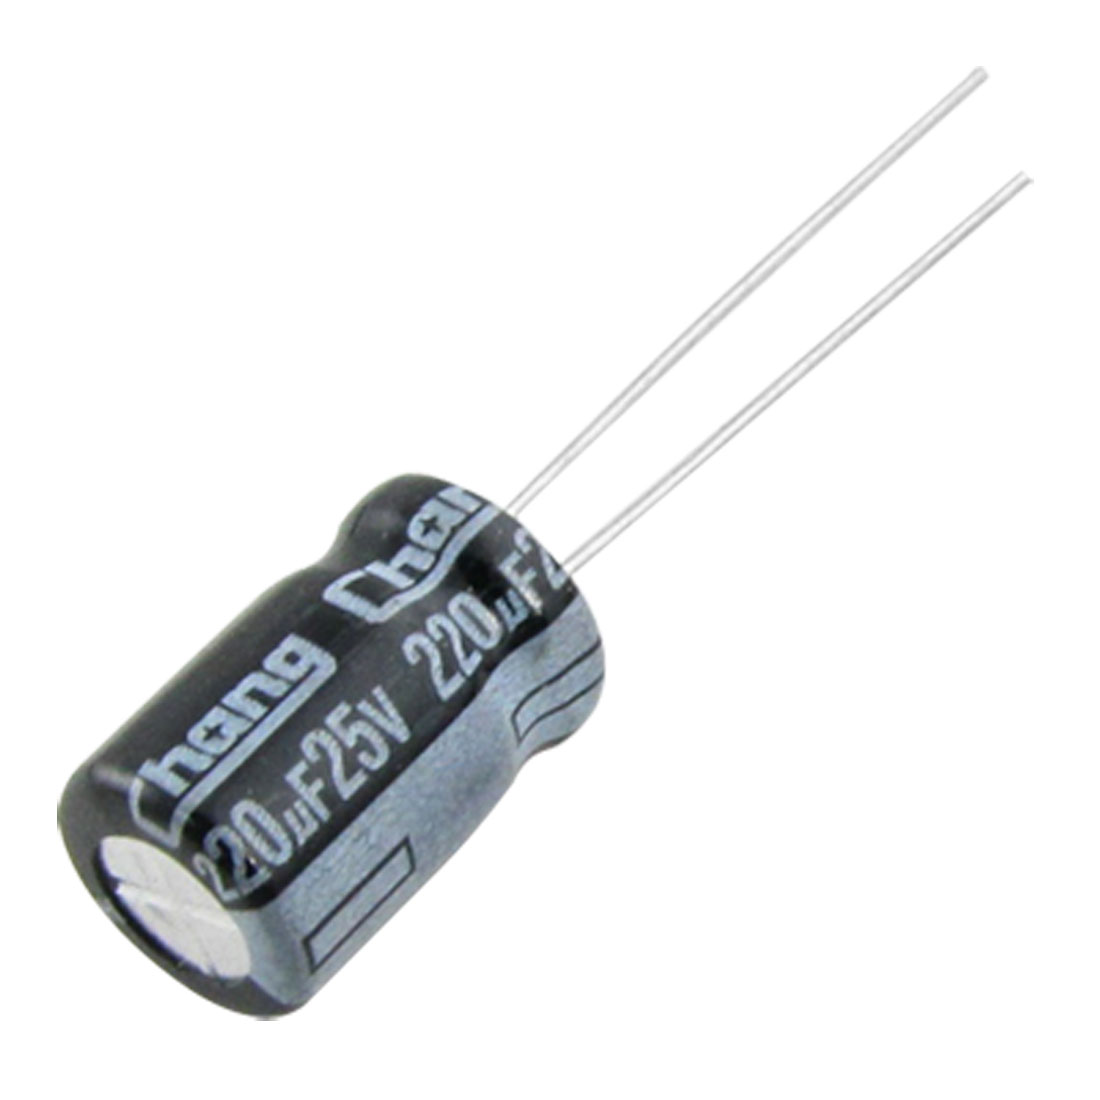 100 Pcs 8x12mm 220uF 25V 105C Aluminum Electrolytic Capacitors